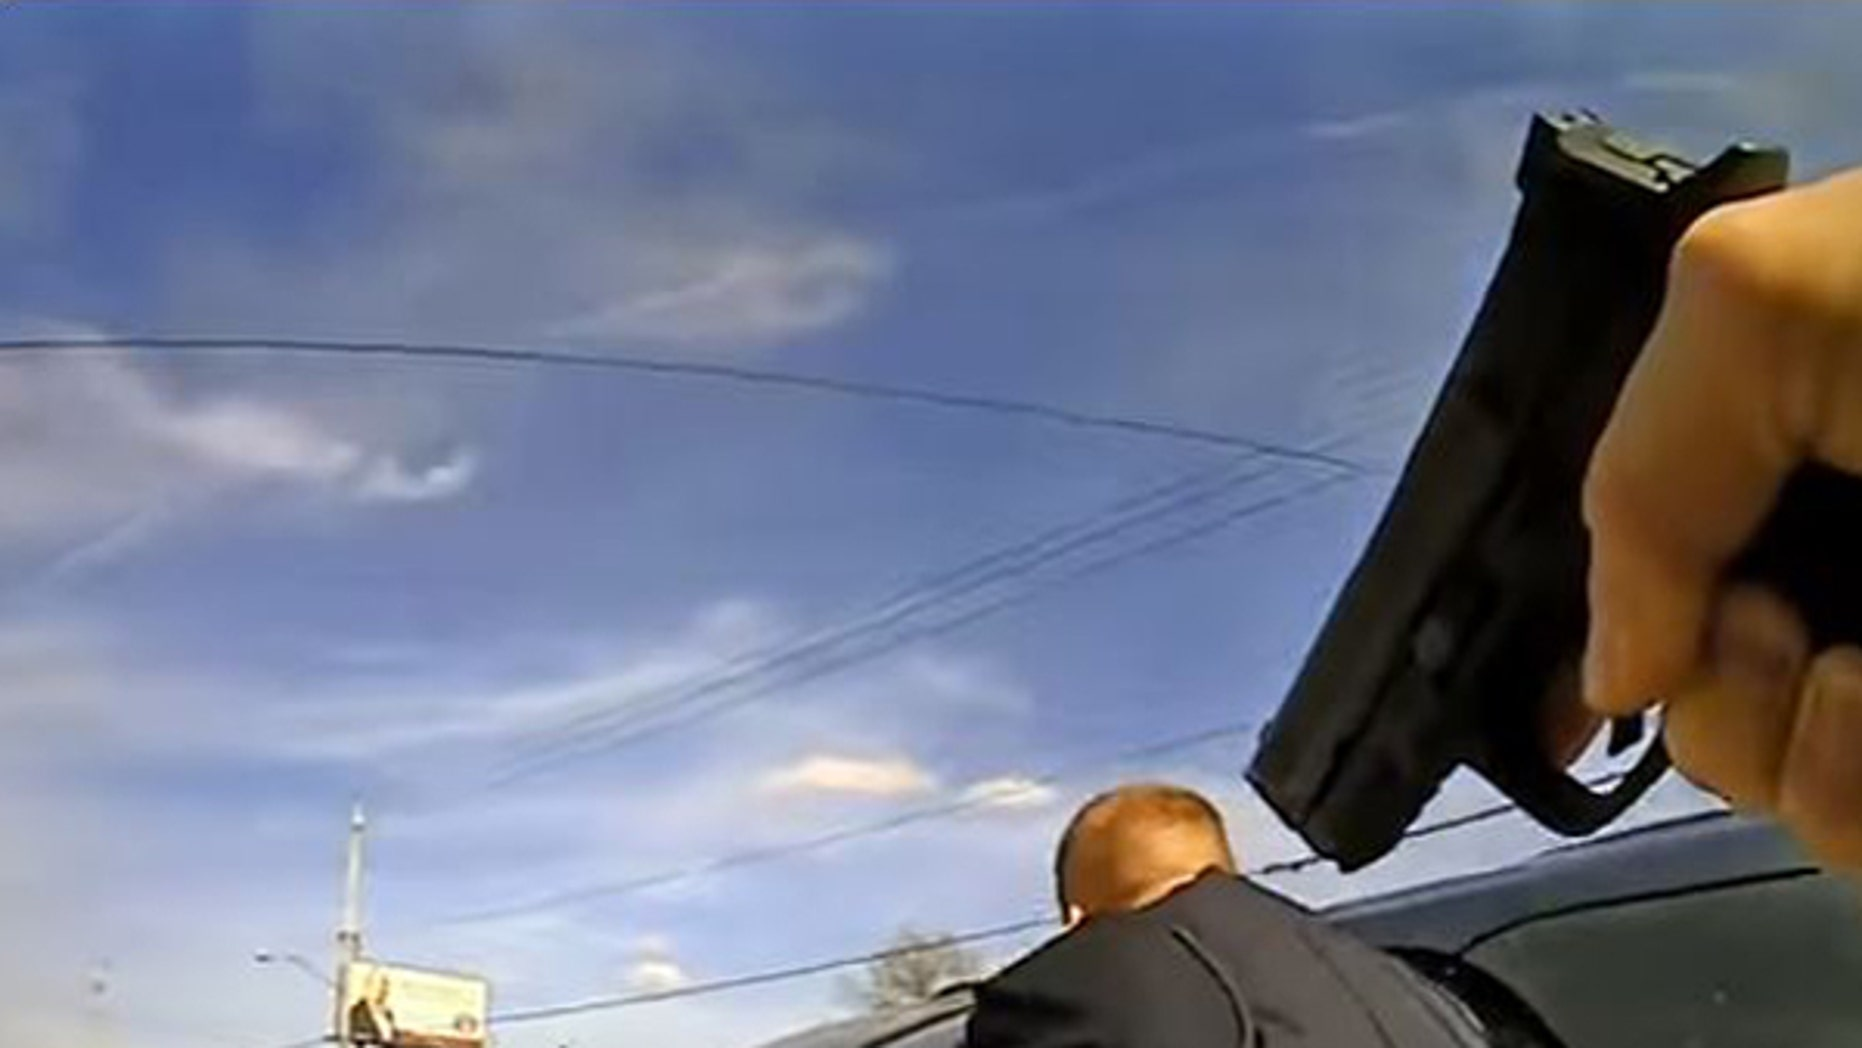 A screen grab depicts the conclusion of a tense incident between police officers and a man in Brooklyn.